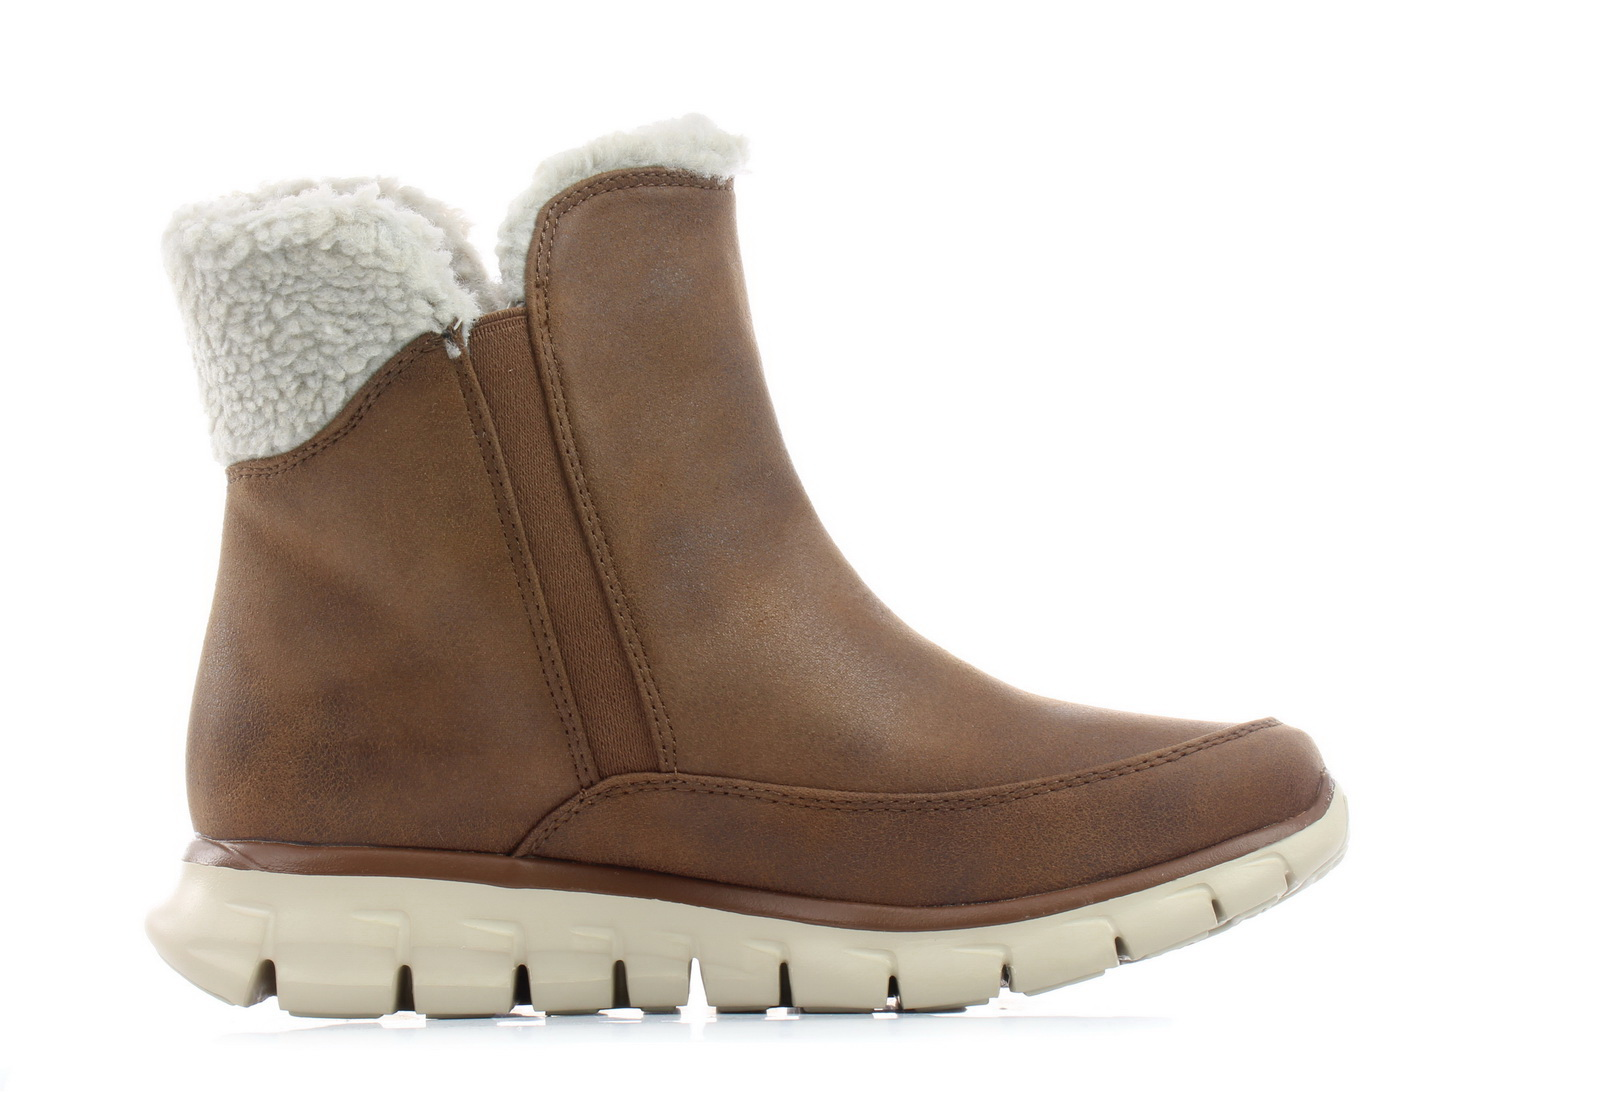 Skechers Boots Synergy Collab 44779 CSNT Online shop for sneakers, shoes and boots